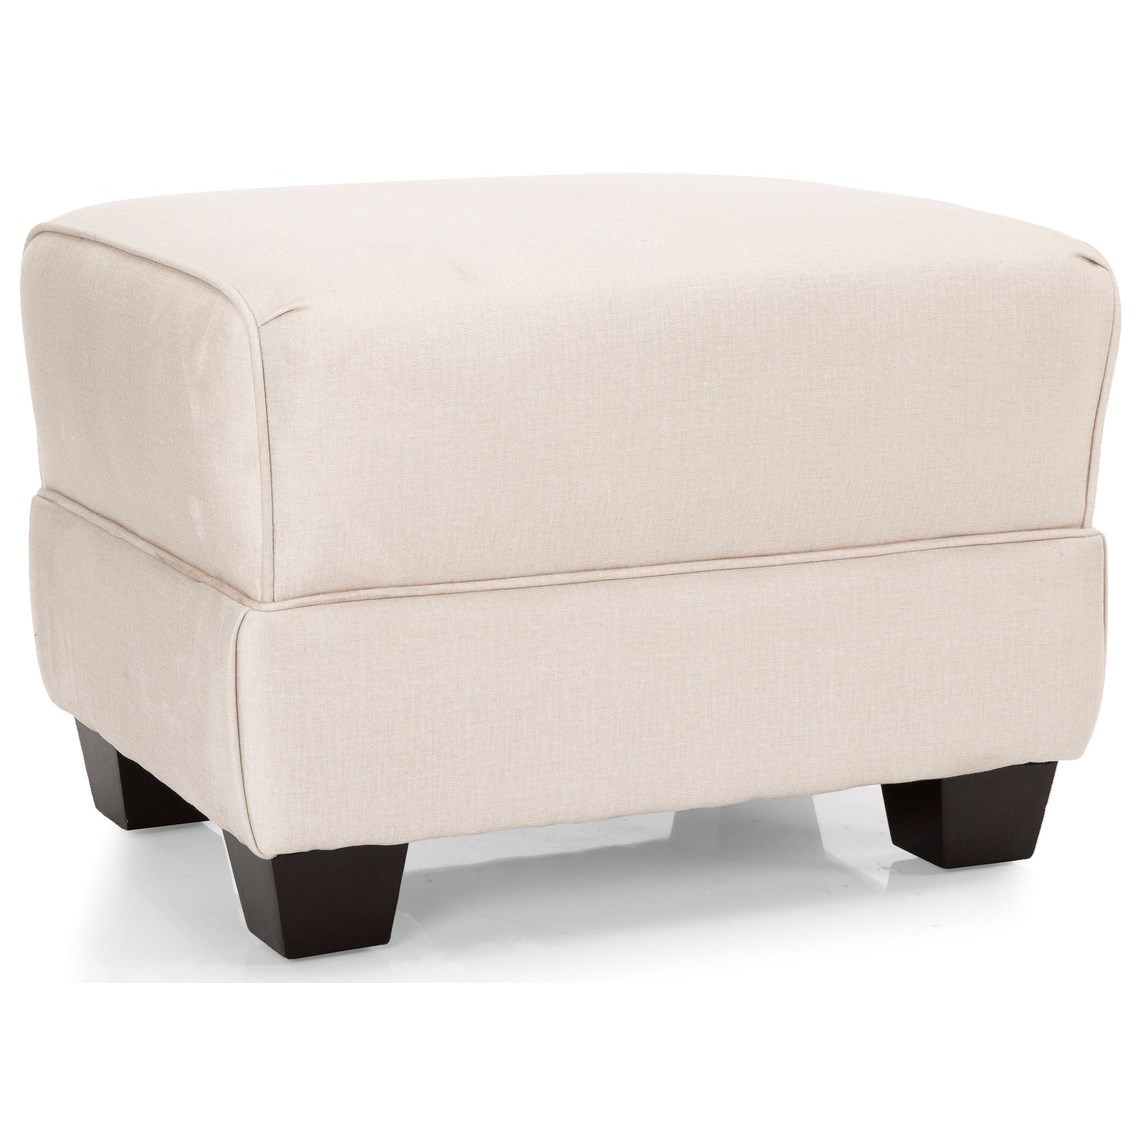 2118 Ottoman by Decor-Rest at Reid's Furniture